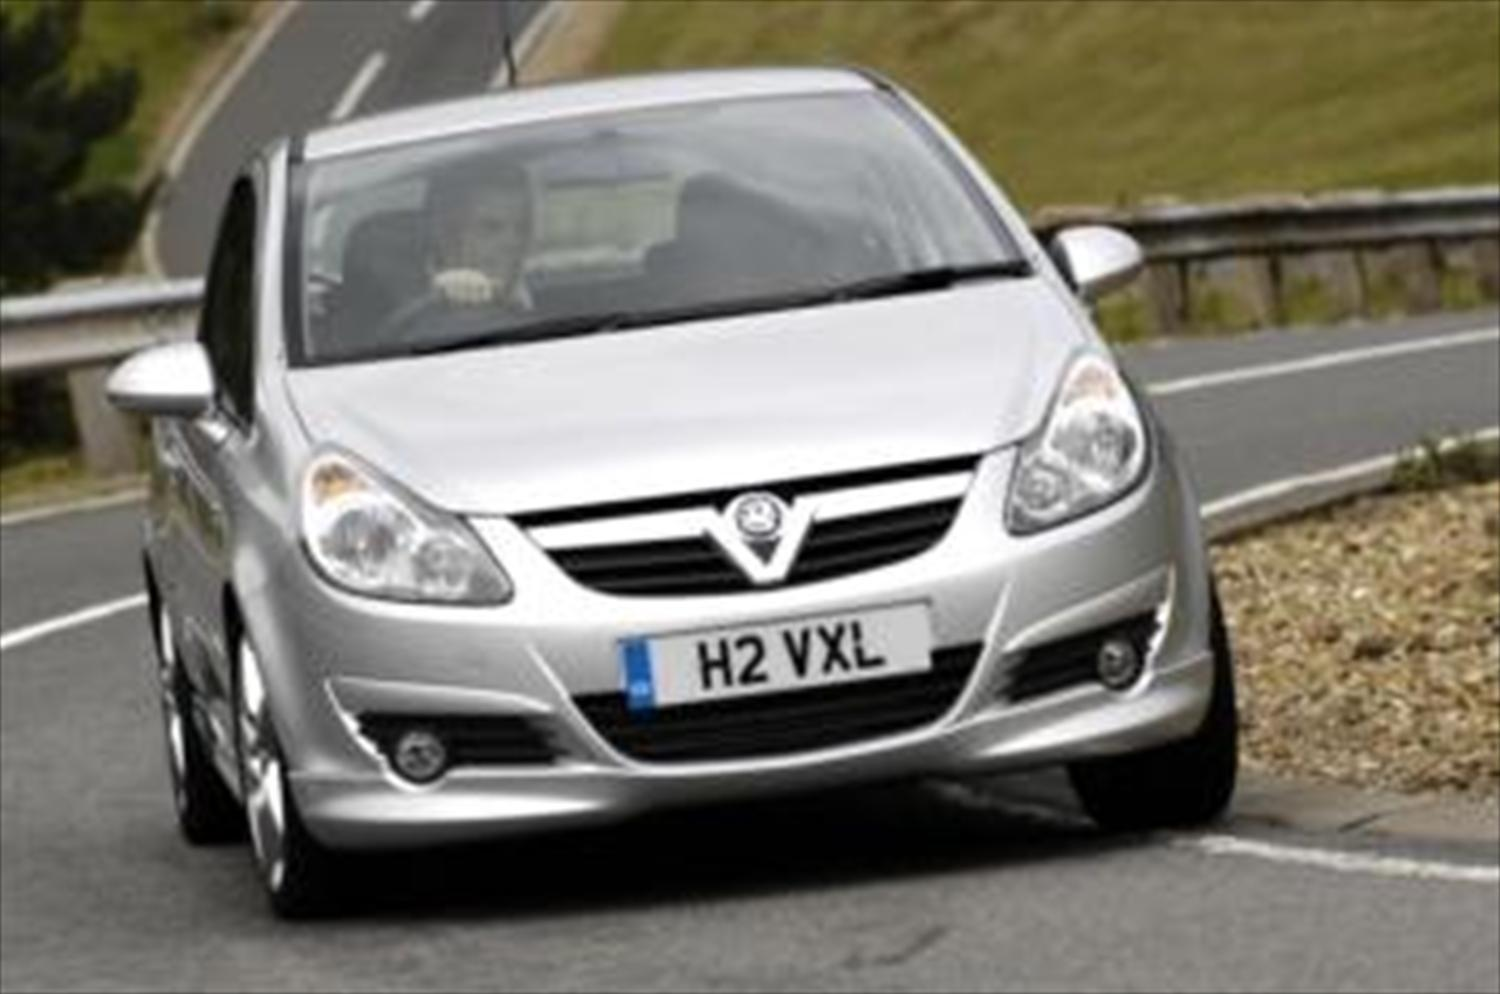 Perrys offers discounts for 'Vauxhall Associates'